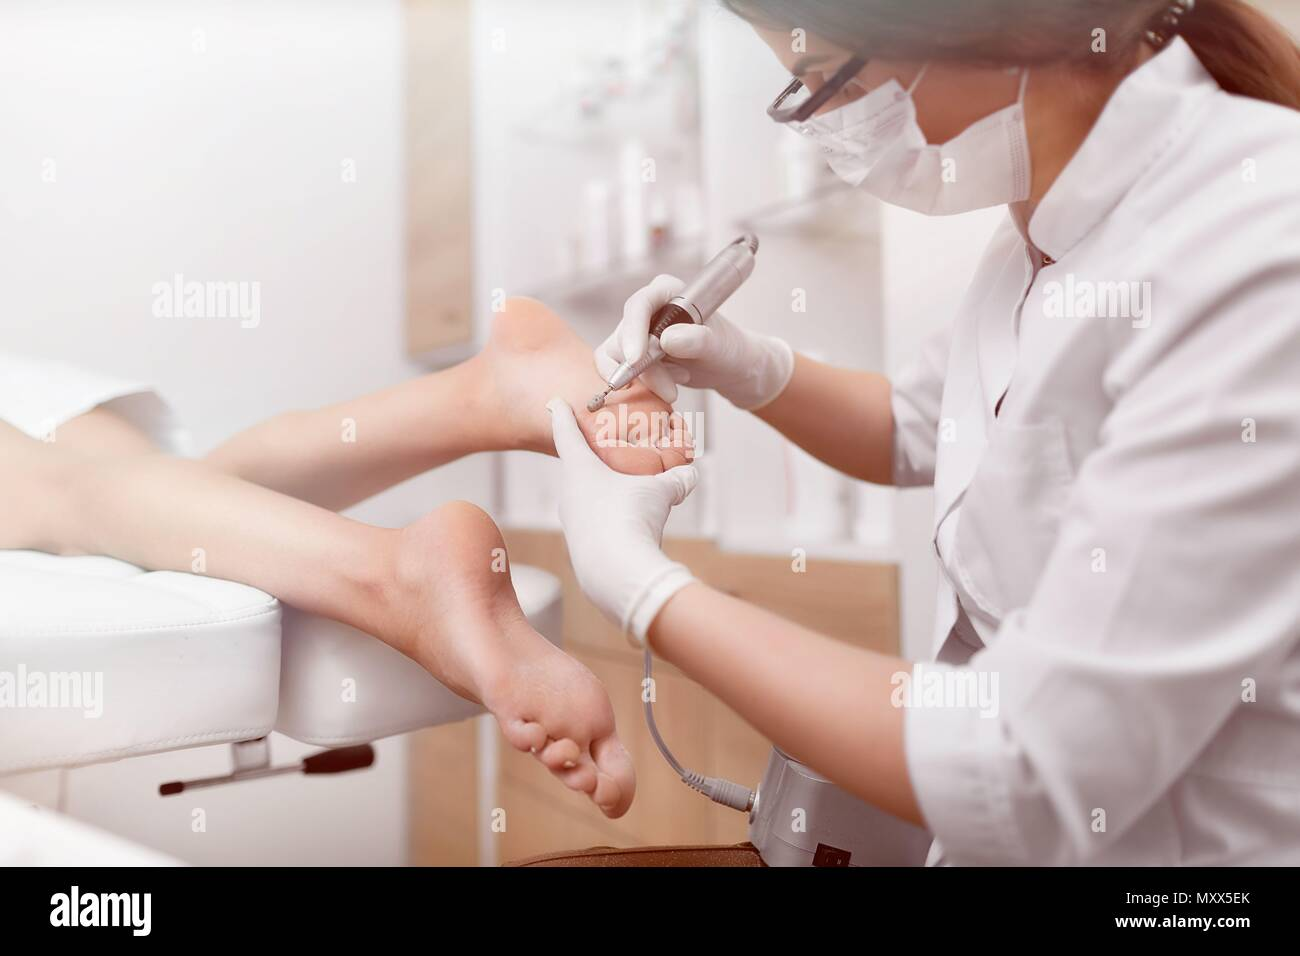 Podiatrist using special grinding equipment. - Stock Image